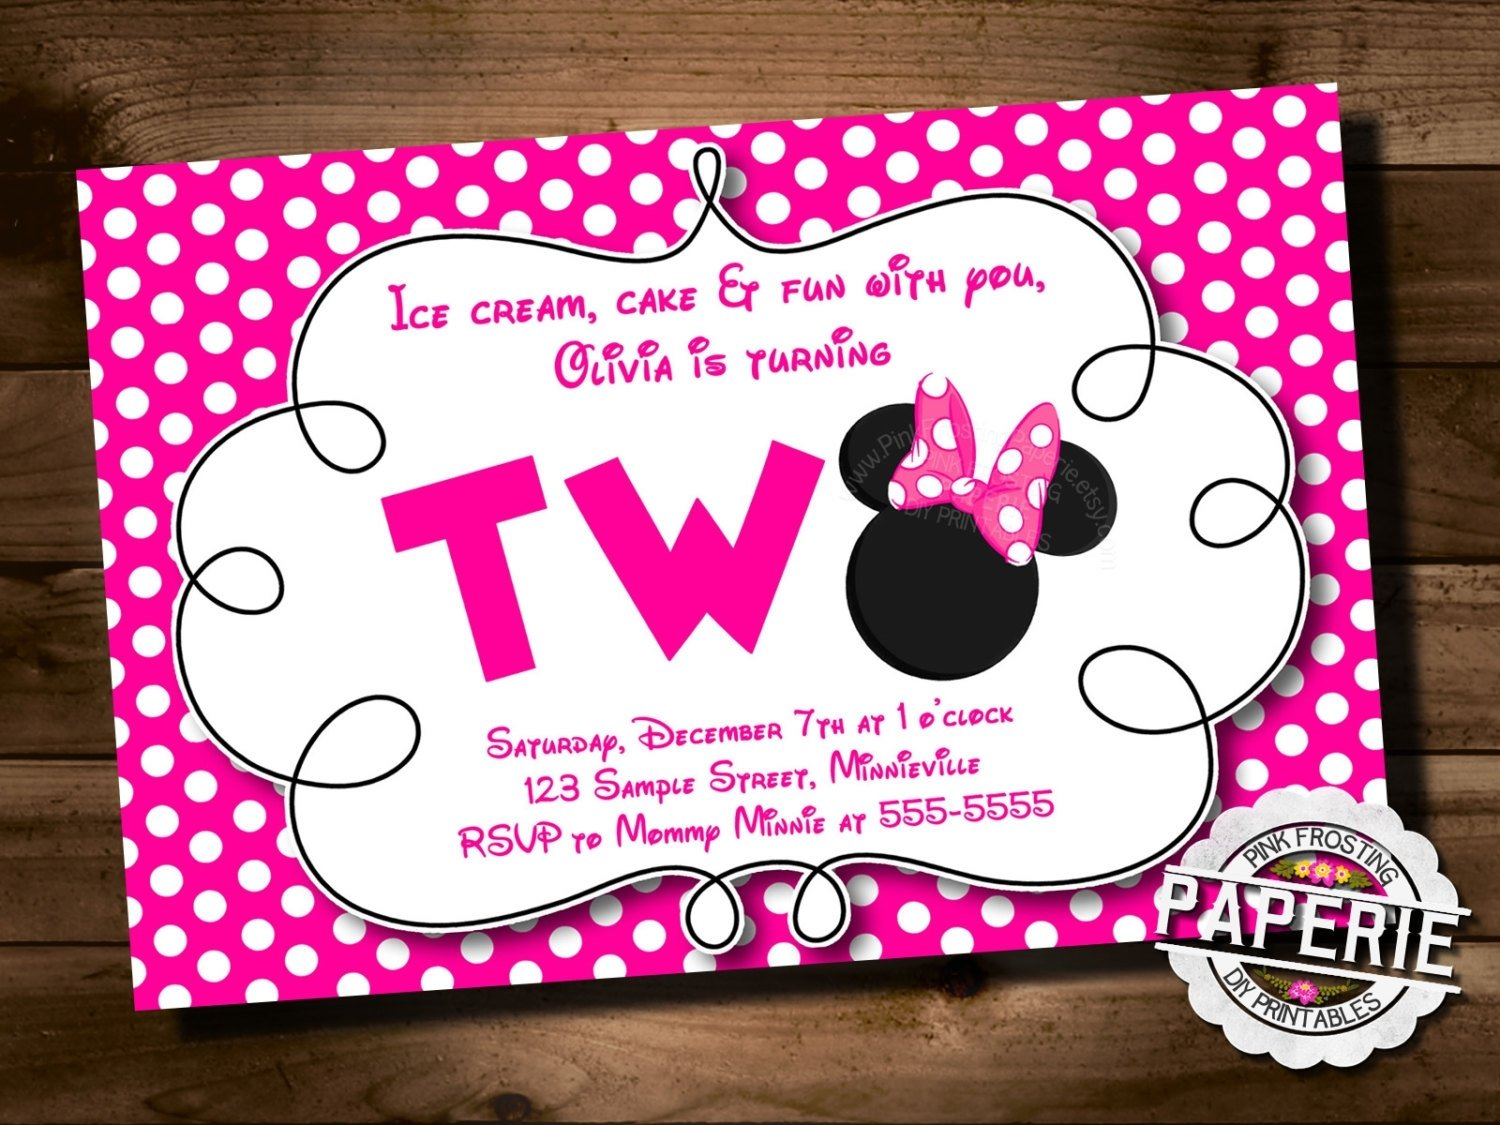 10 Most Popular Minnie Mouse 2Nd Birthday Party Ideas minnie mouse 2nd birthday invitations minnie mouse 2nd birthday